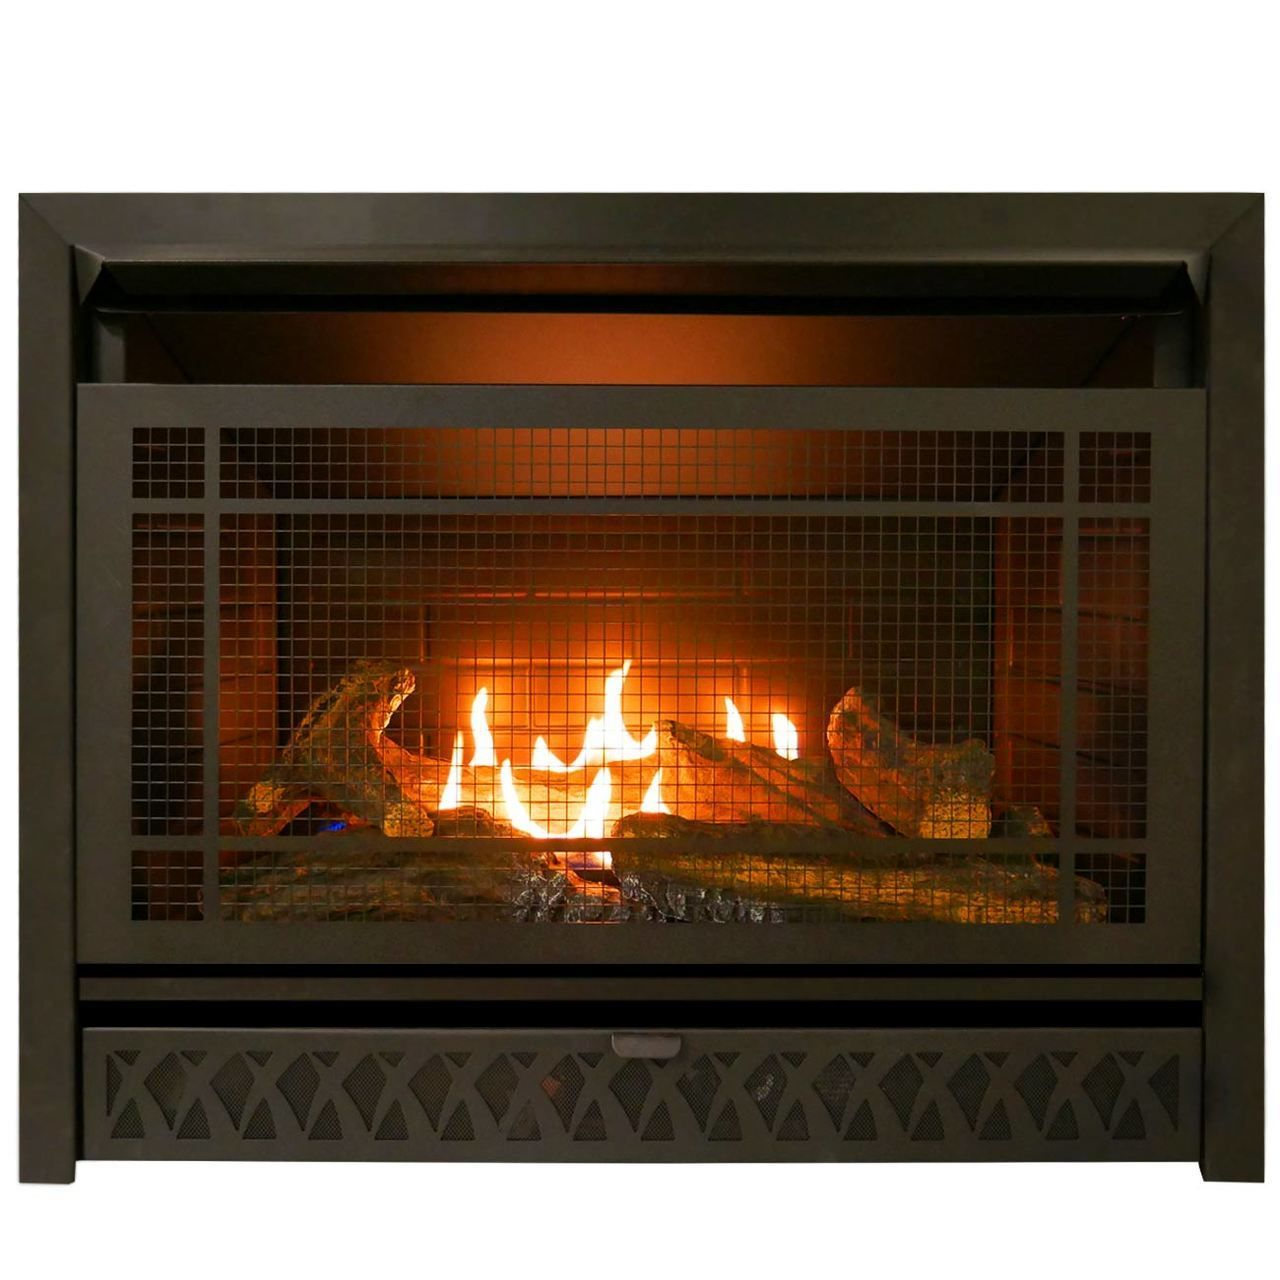 Wayfair Gas Fireplace Lovely Pro Fireplaces 29 In Ventless Dual Fuel Firebox Insert